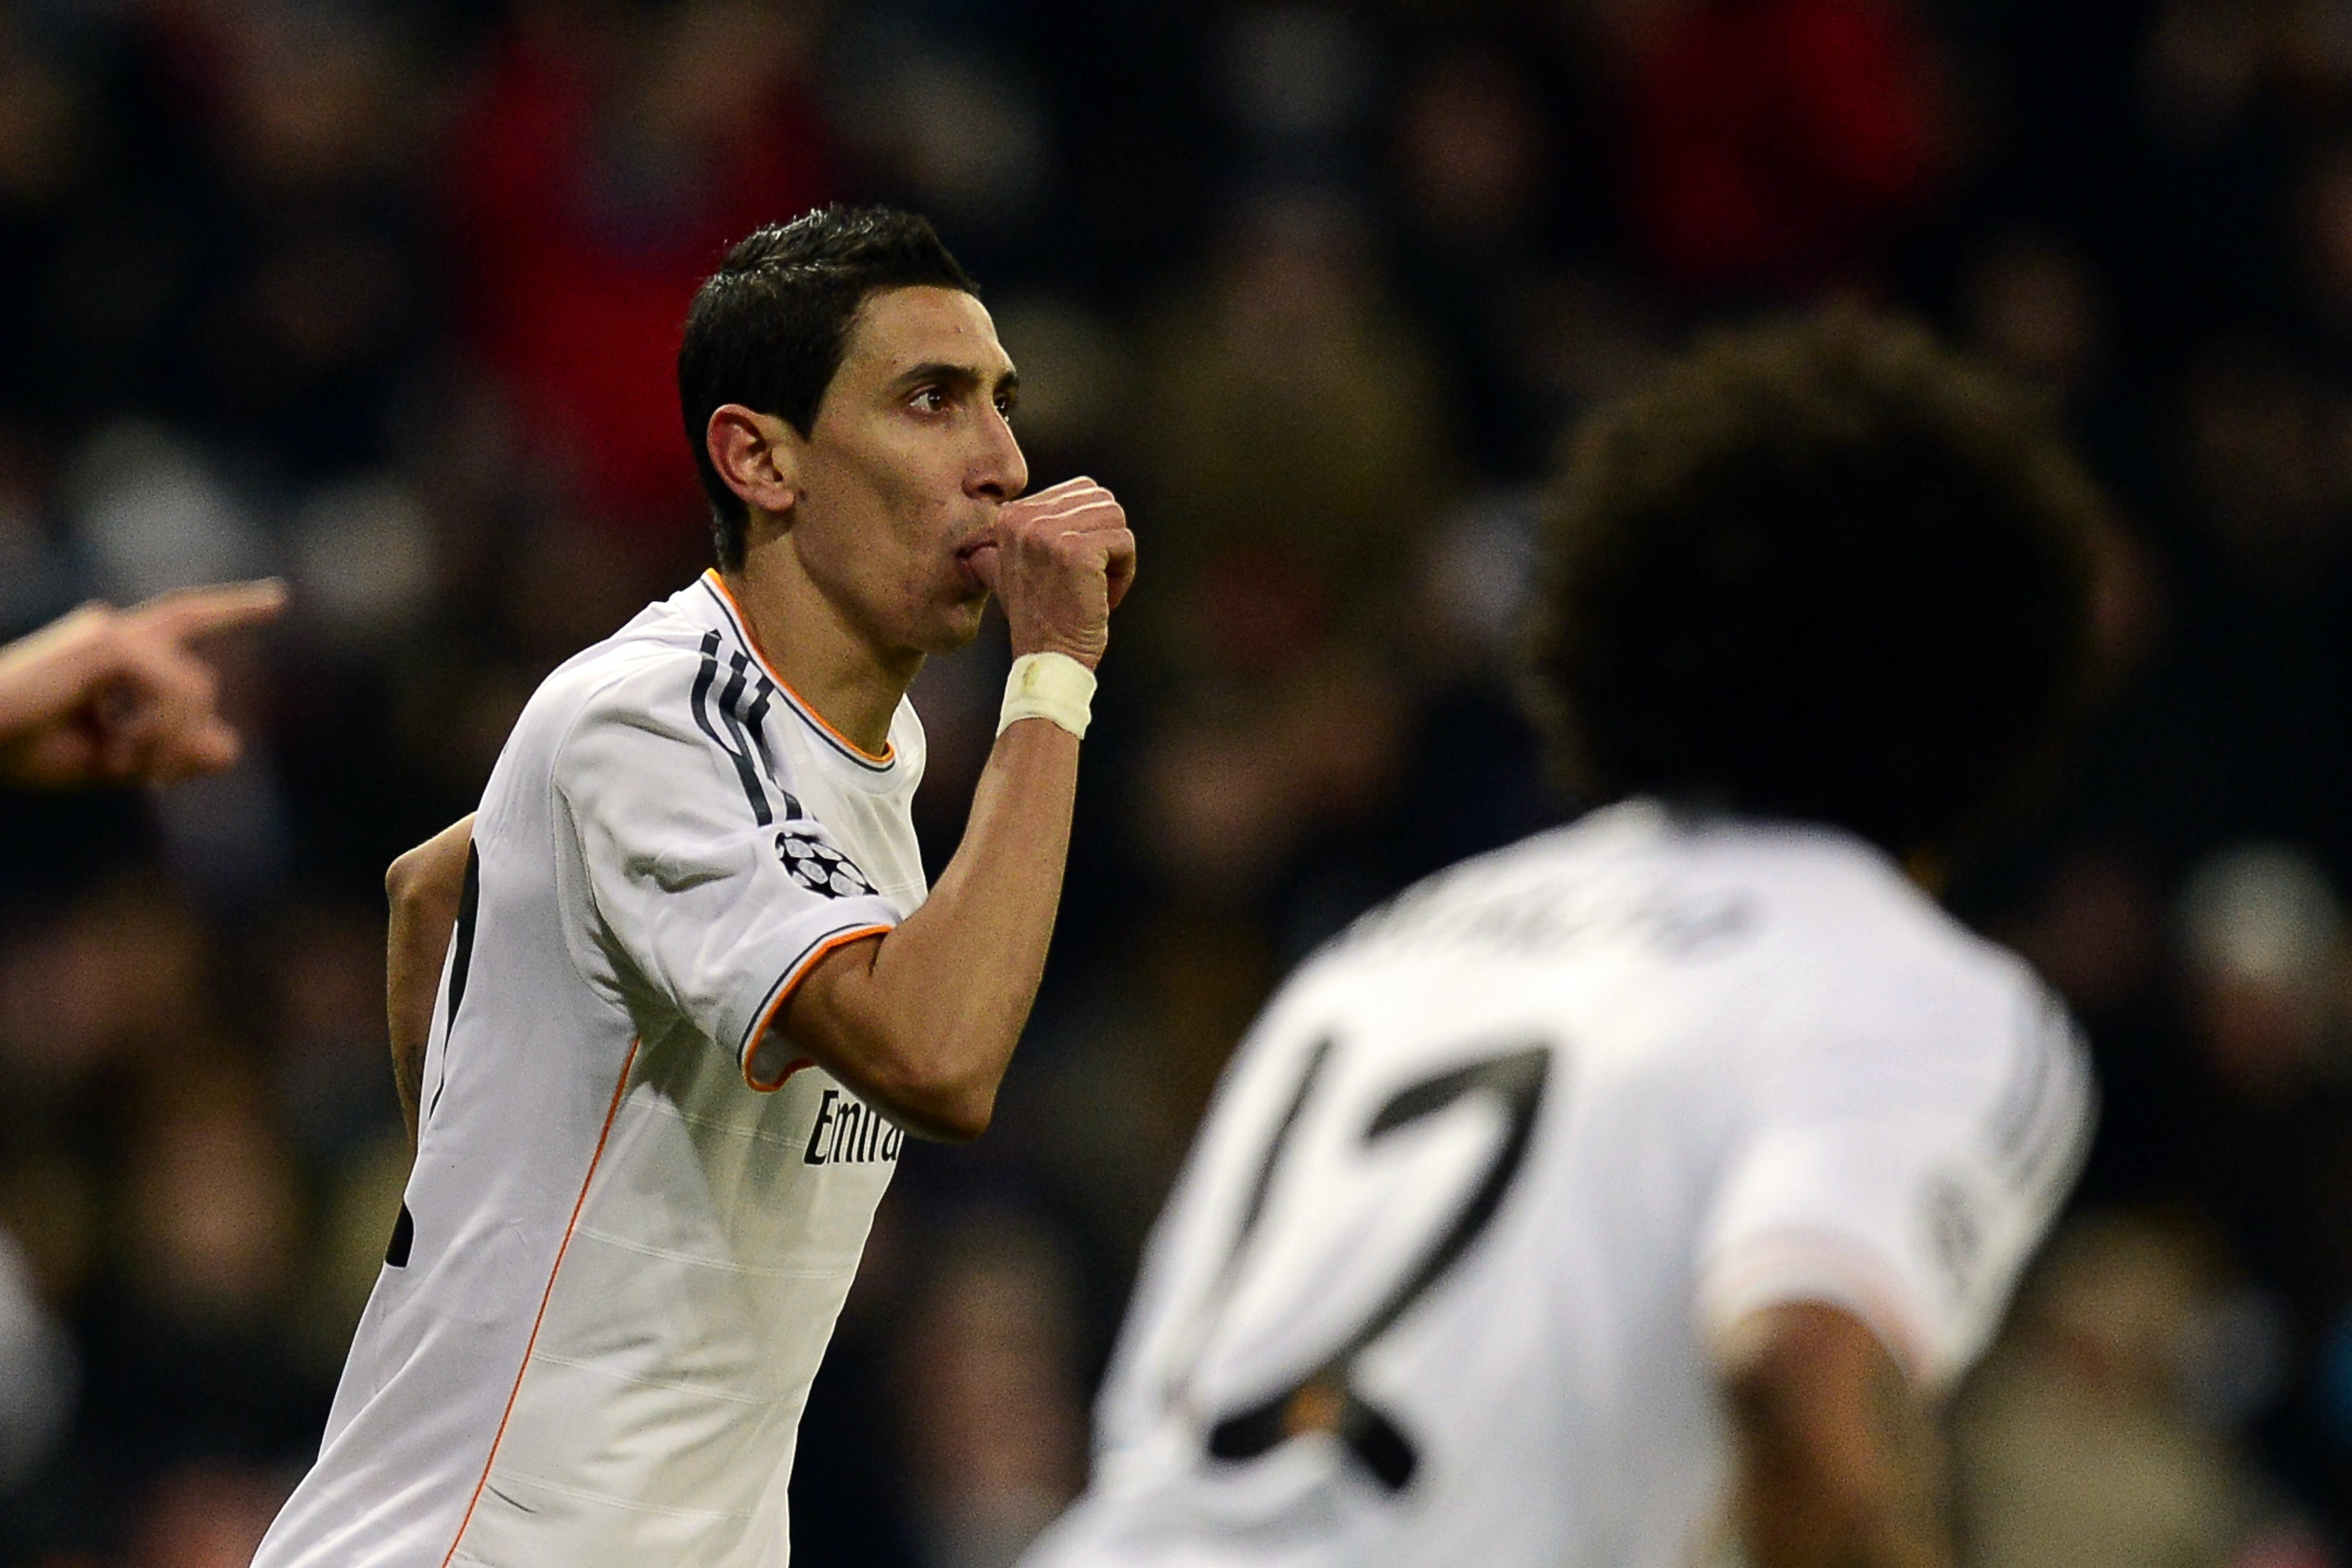 Real Madrid' Angel di Maria celebrates after scoring his team's third goal against Galatasaray during their Champions League group match on November 27, 2013